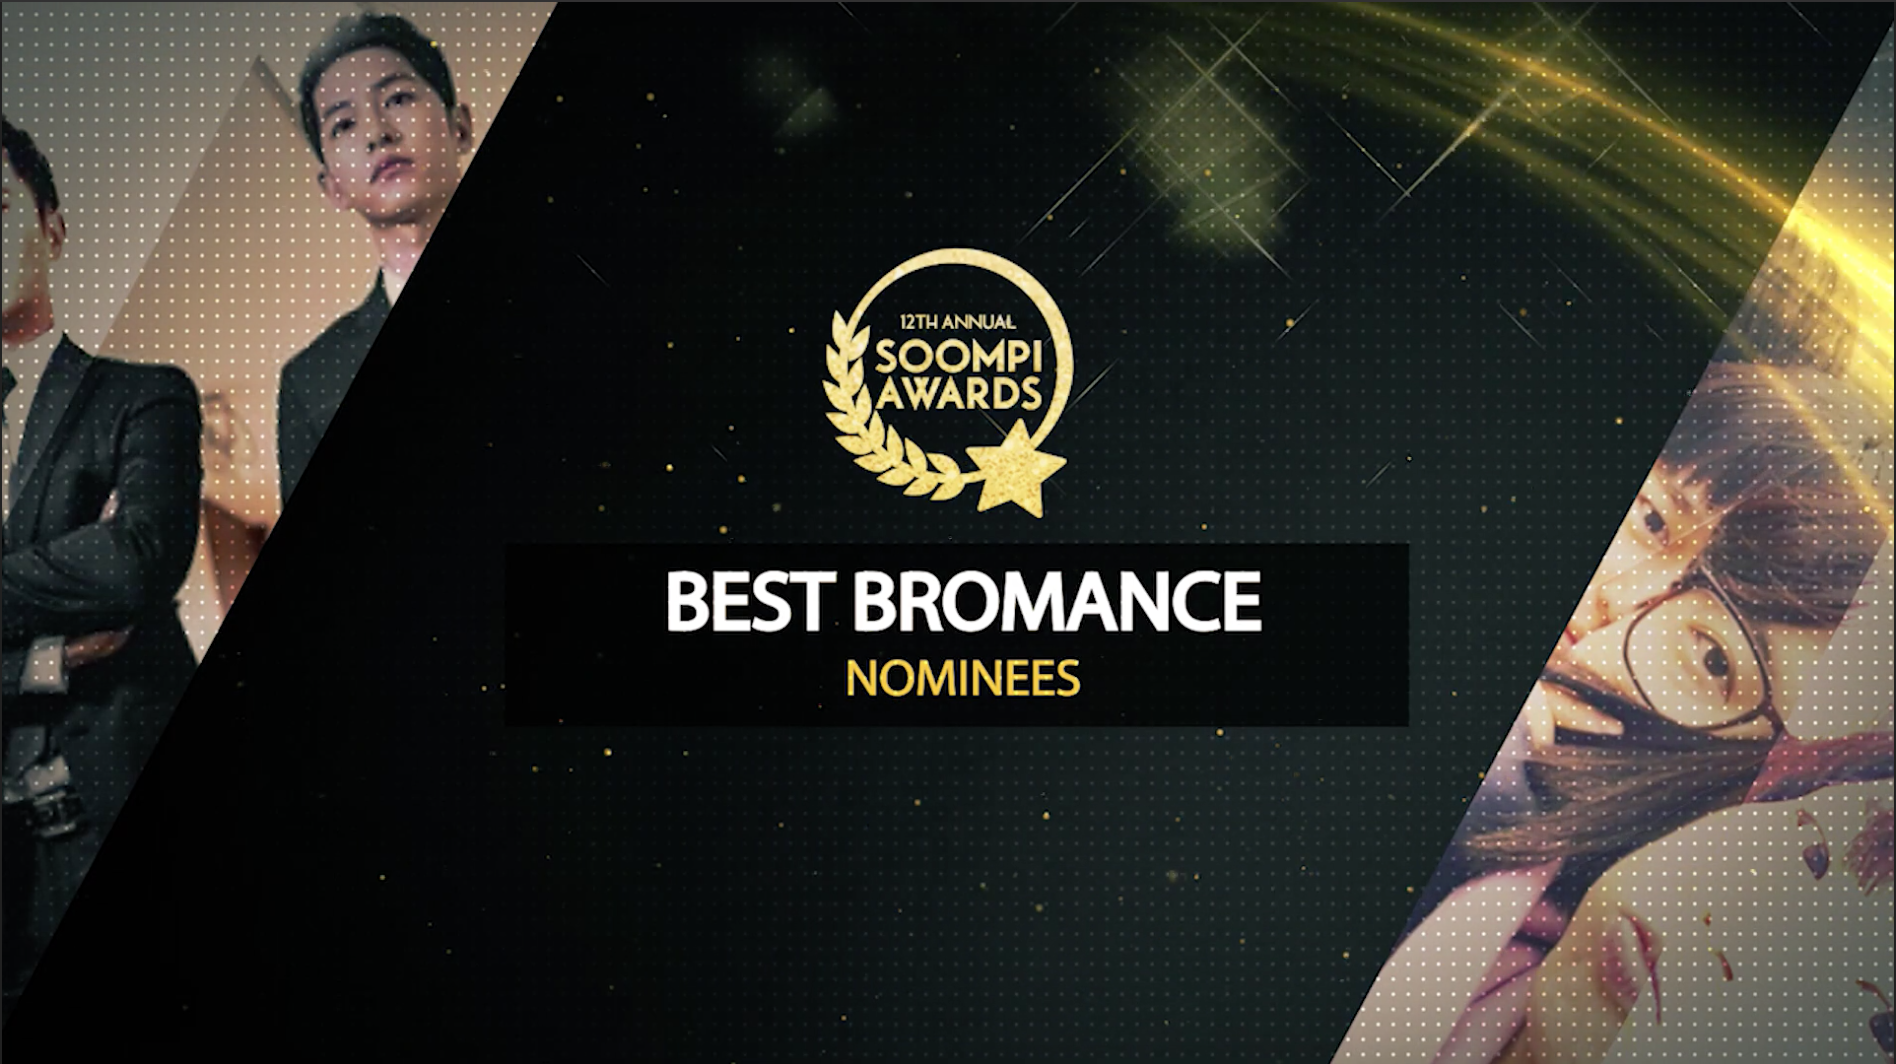 Soompi Awards Episode 6: Best Bromance